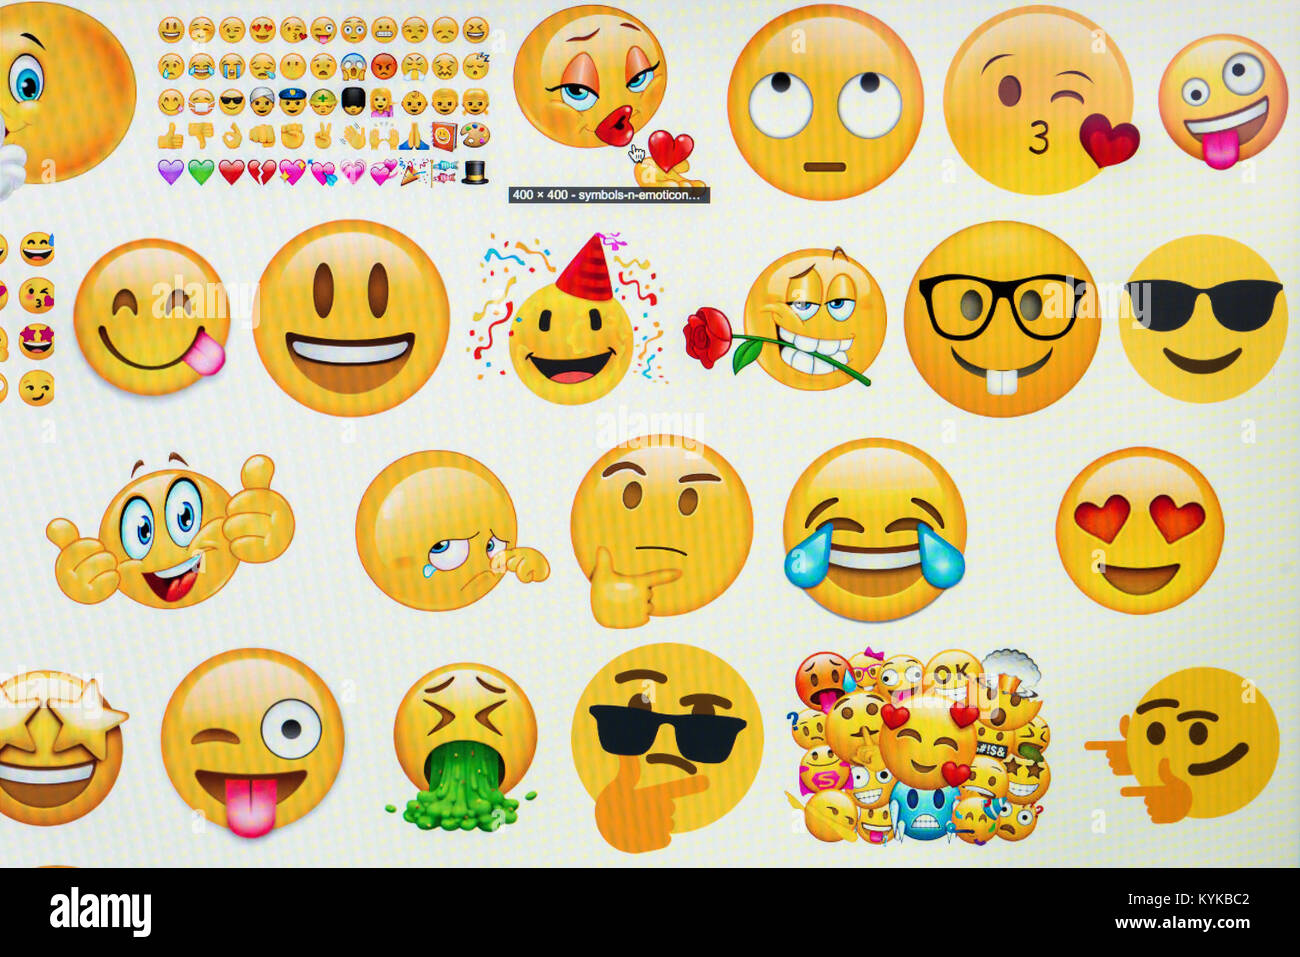 Emoticons Computer Stock Photos Emoticons Computer Stock Images